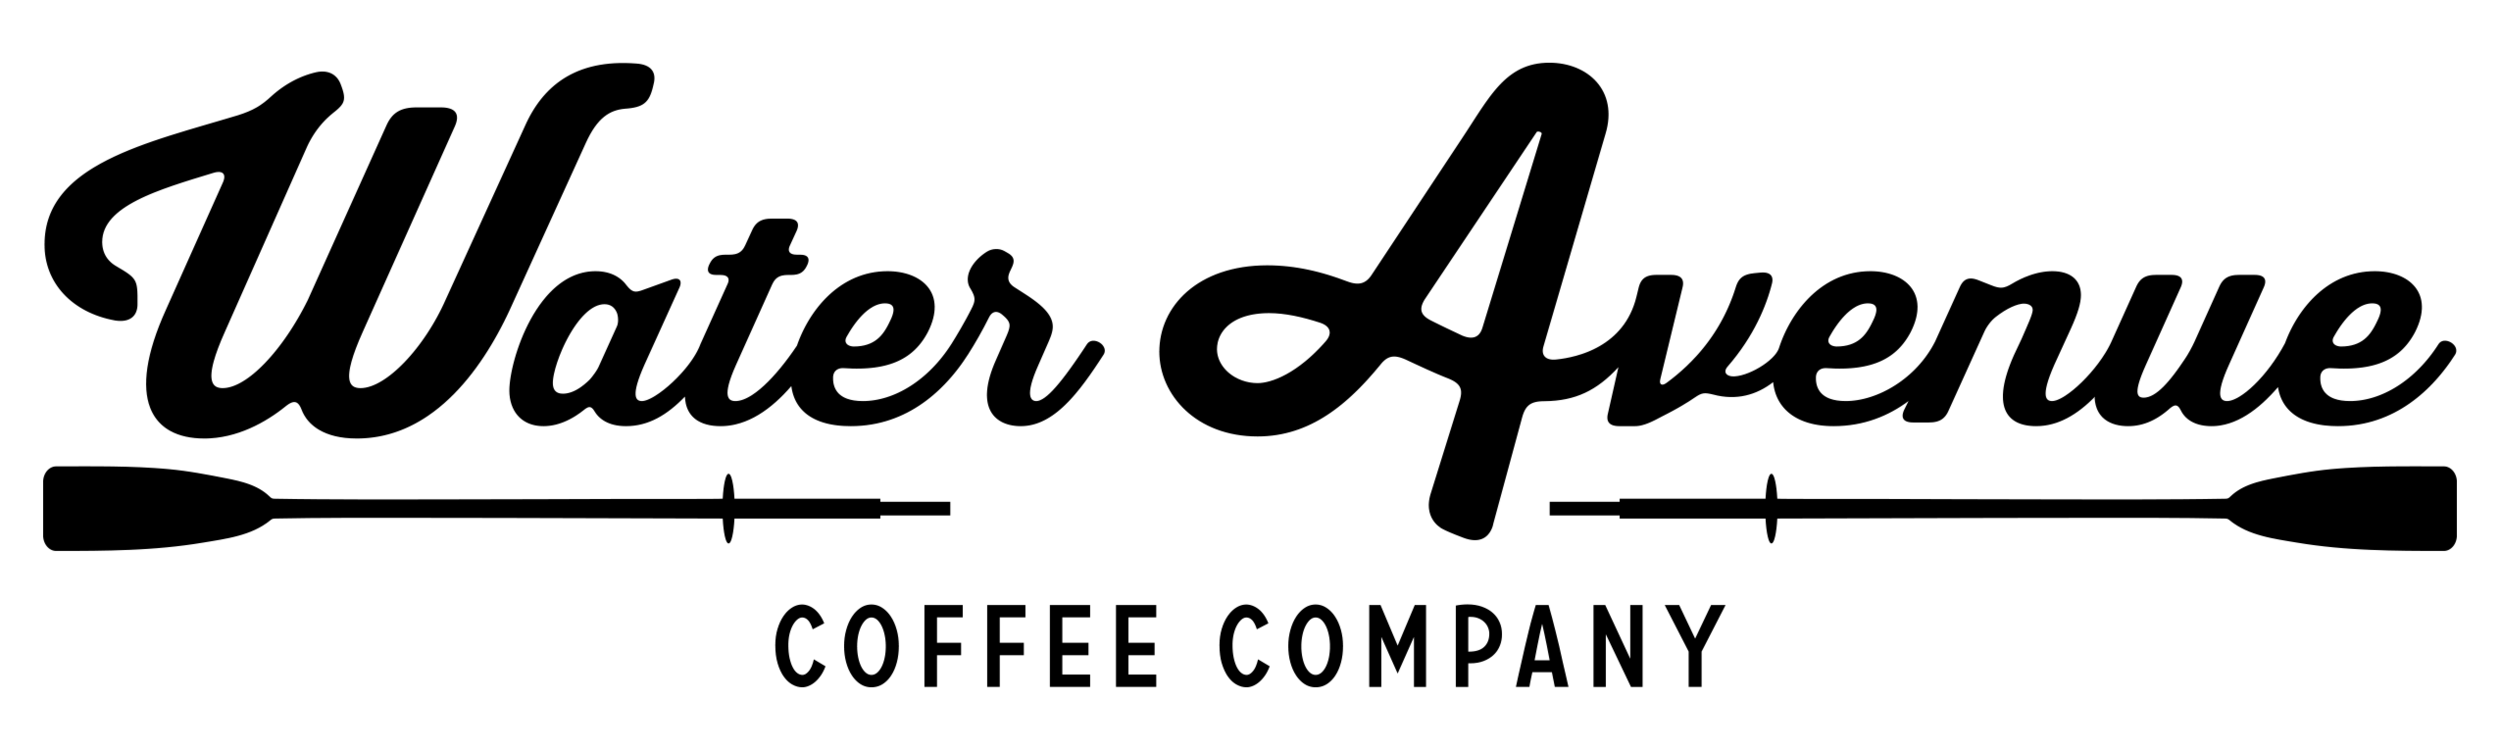 Water Ave logo - transparent.png